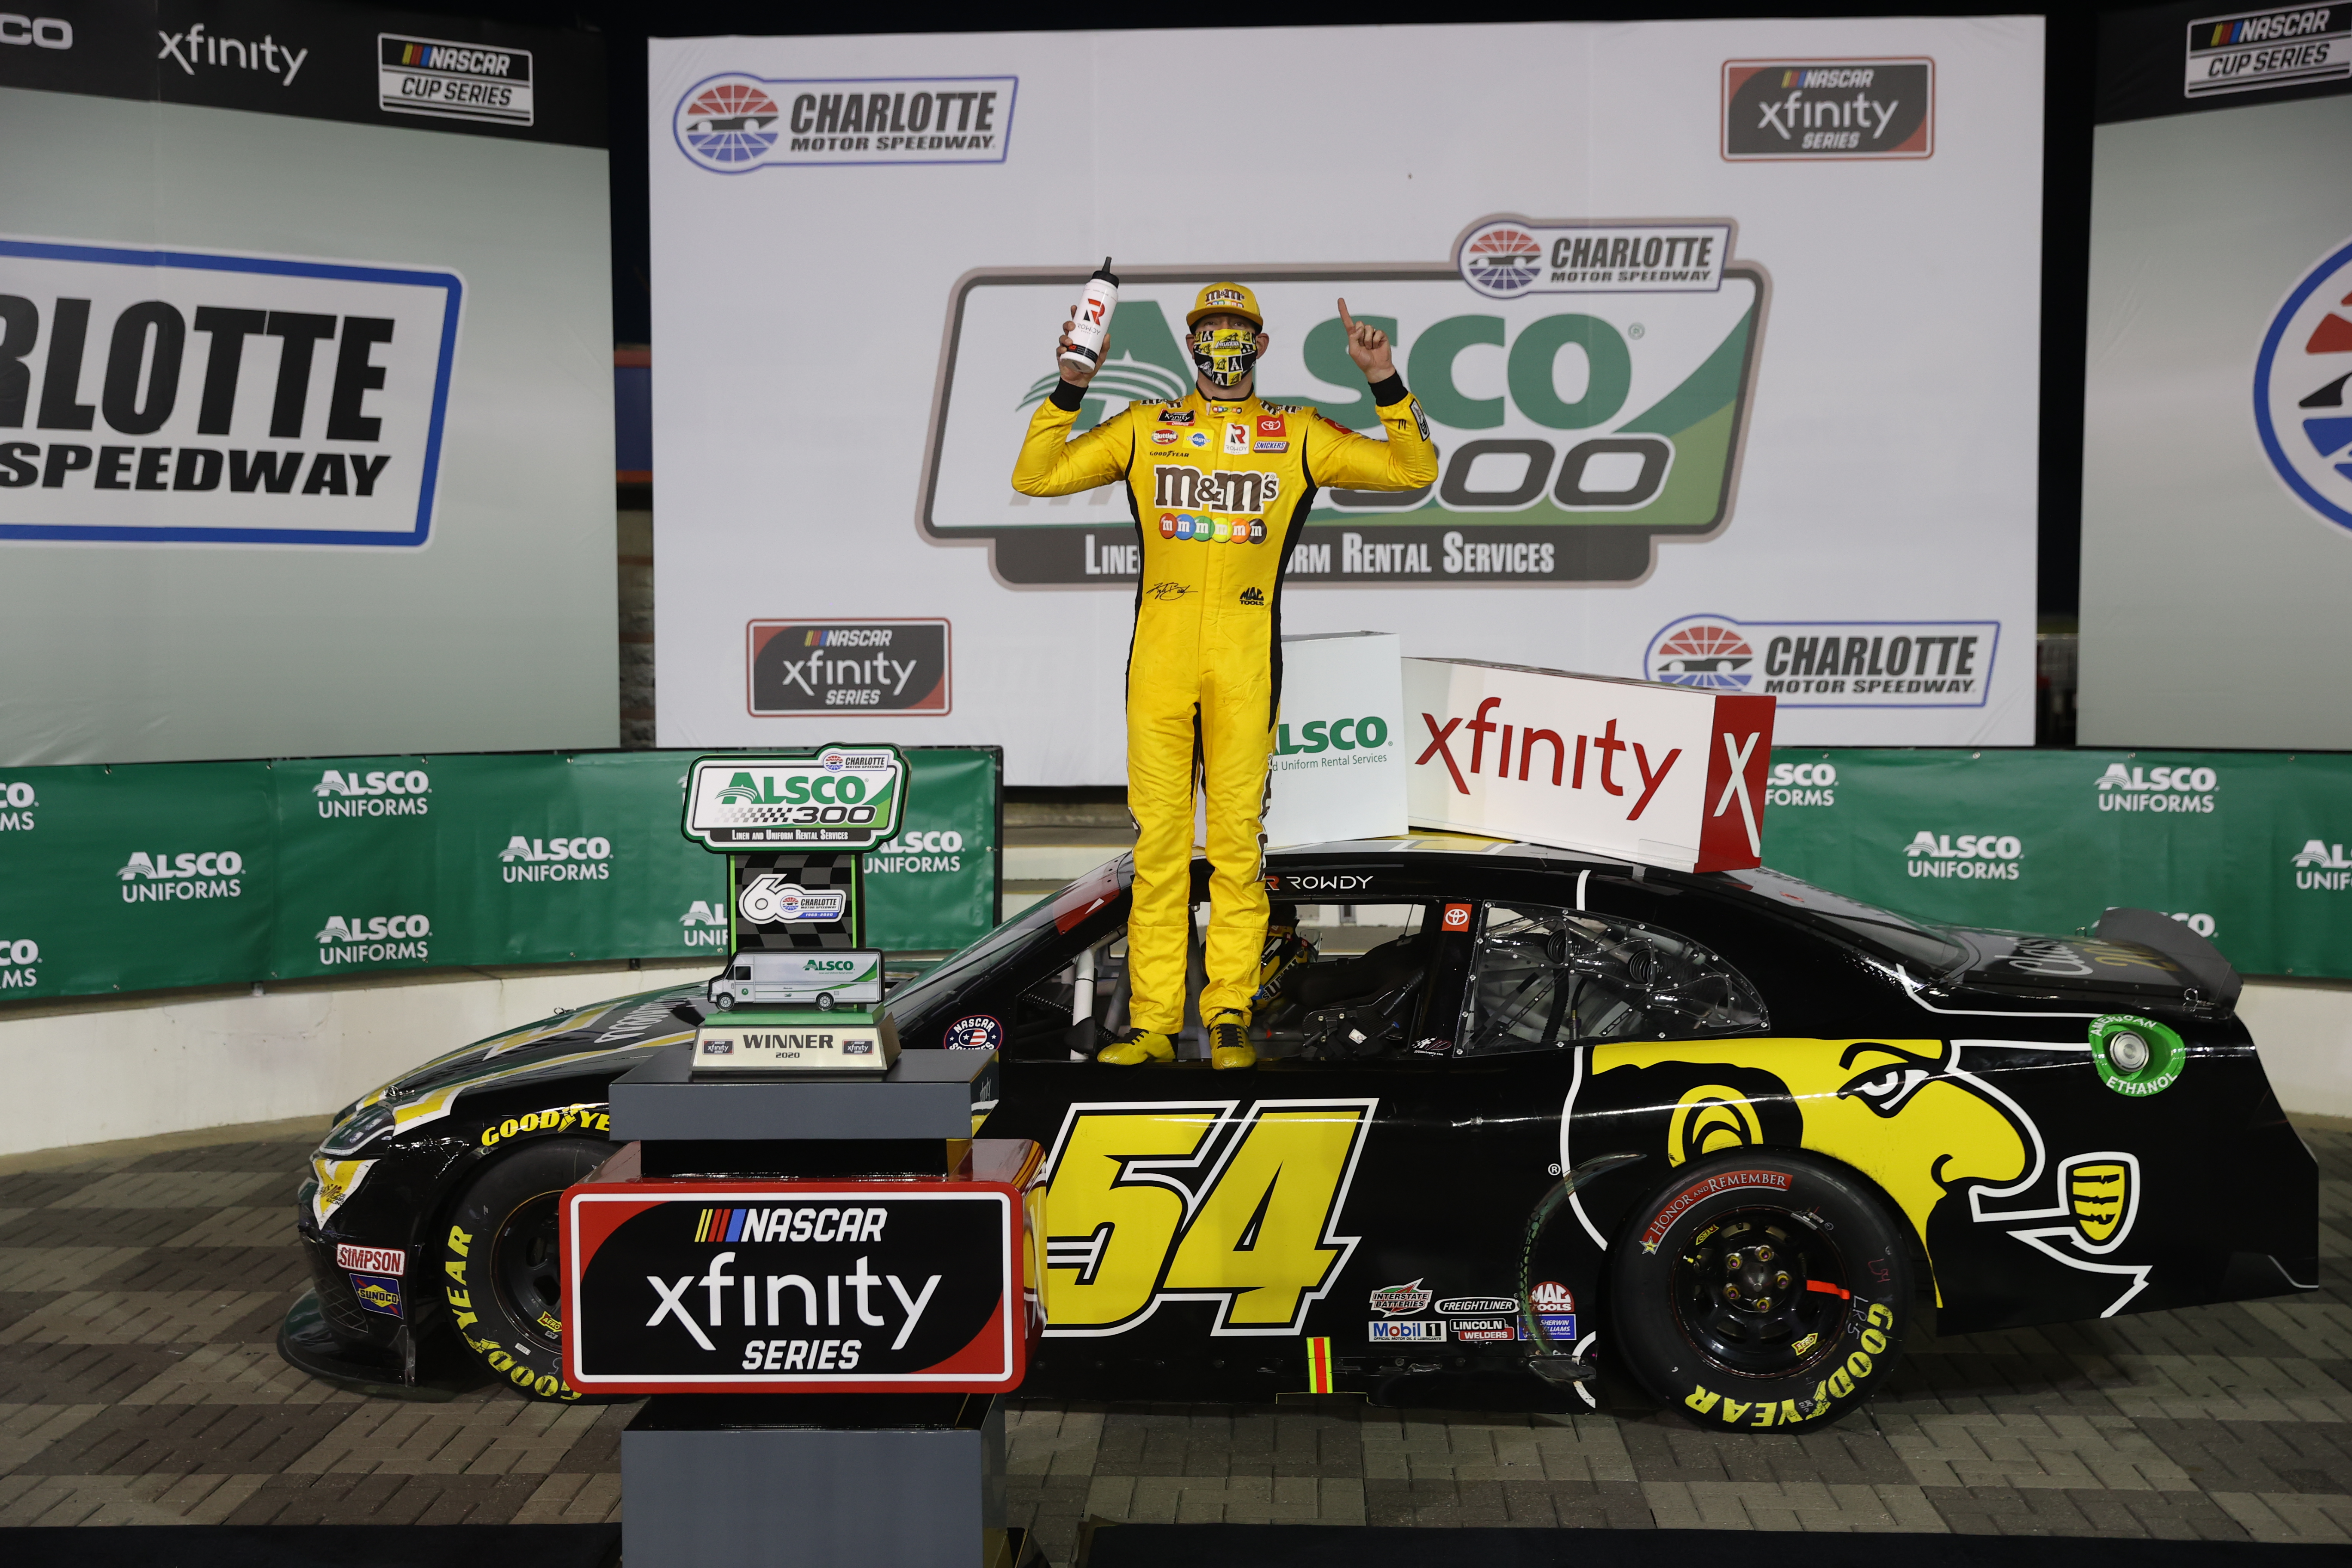 App State Class of 2020 sponsored driver Kyle Busch celebrates in Victory Lane after winning the NASCAR Xfinity Series Alsco 300